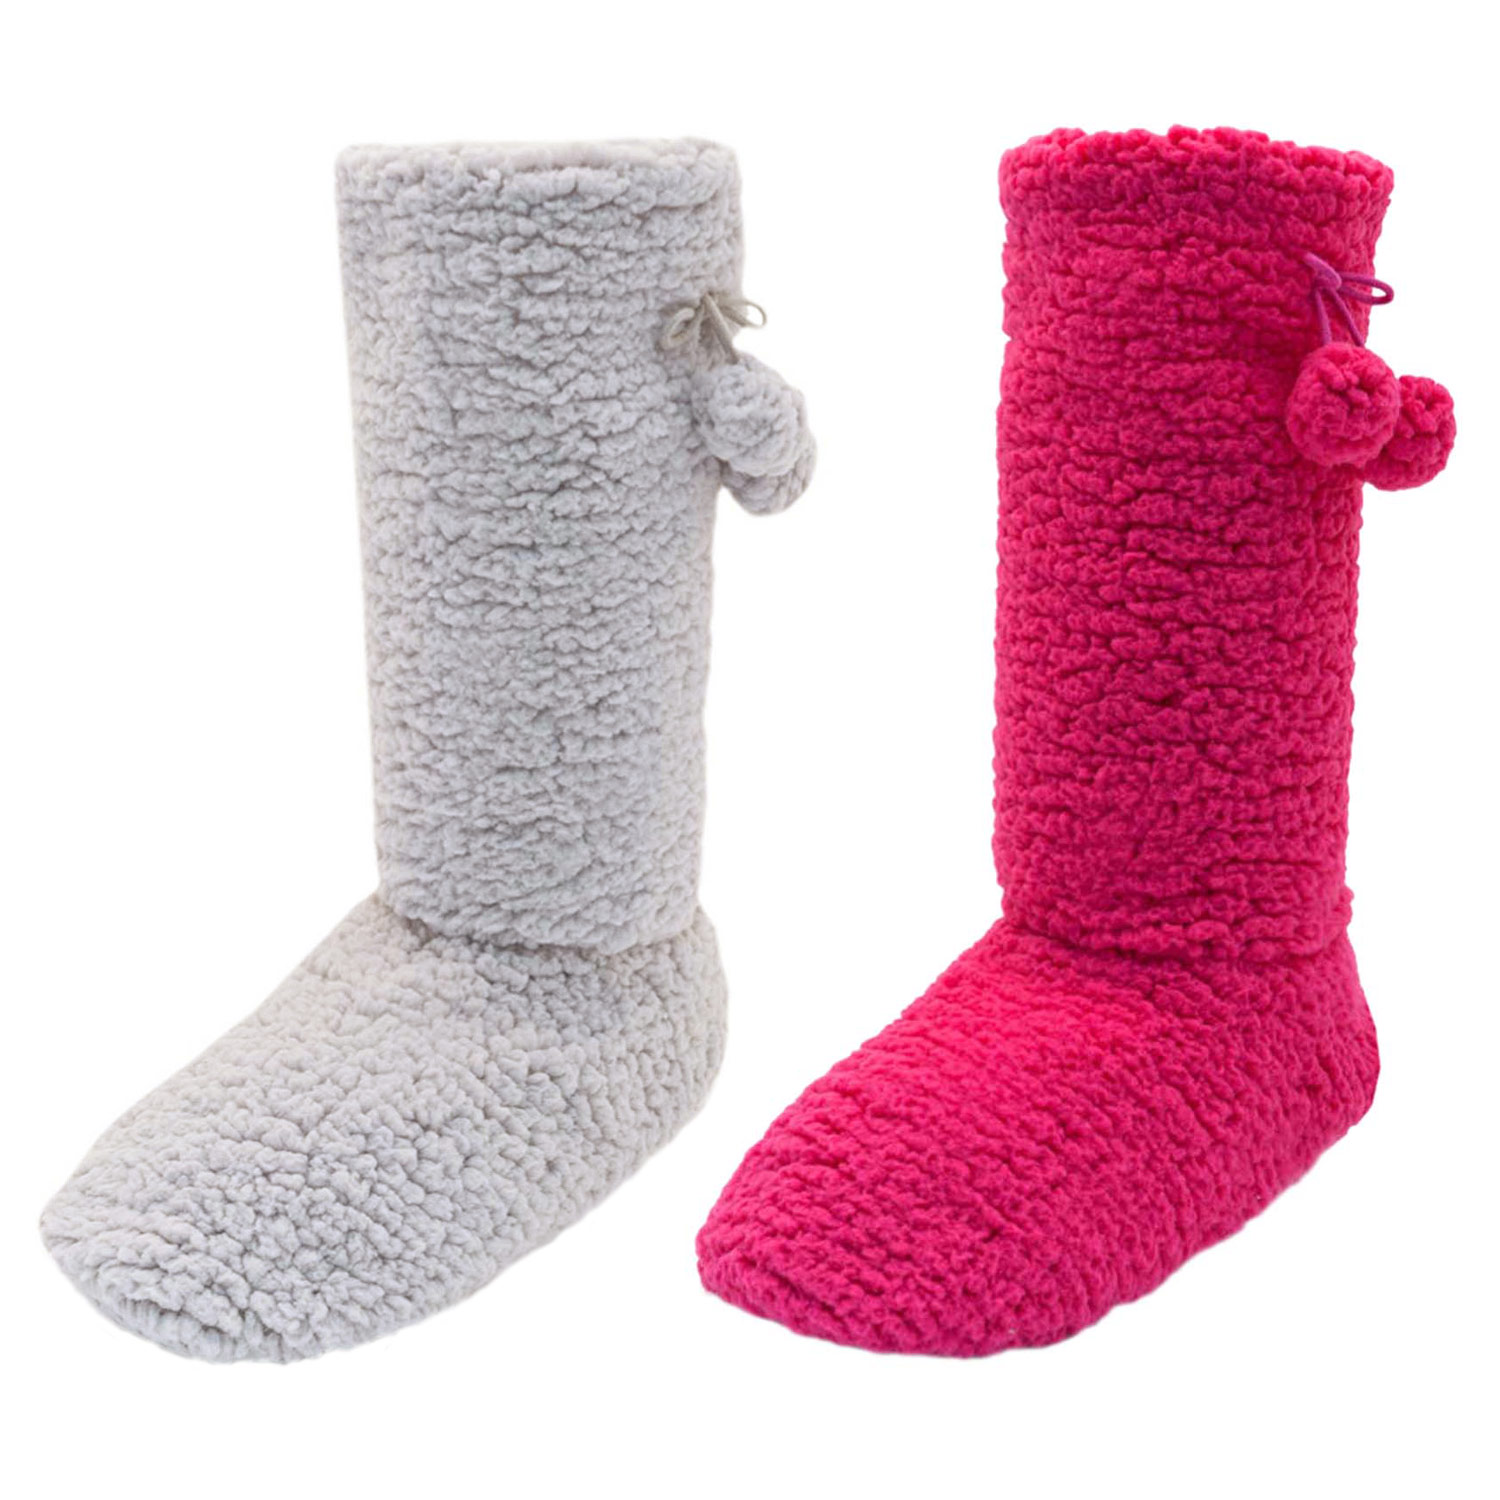 Ladies Long Fleece Bootie Slipper Socks With Pom Poms And Non Slip Soles New | EBay